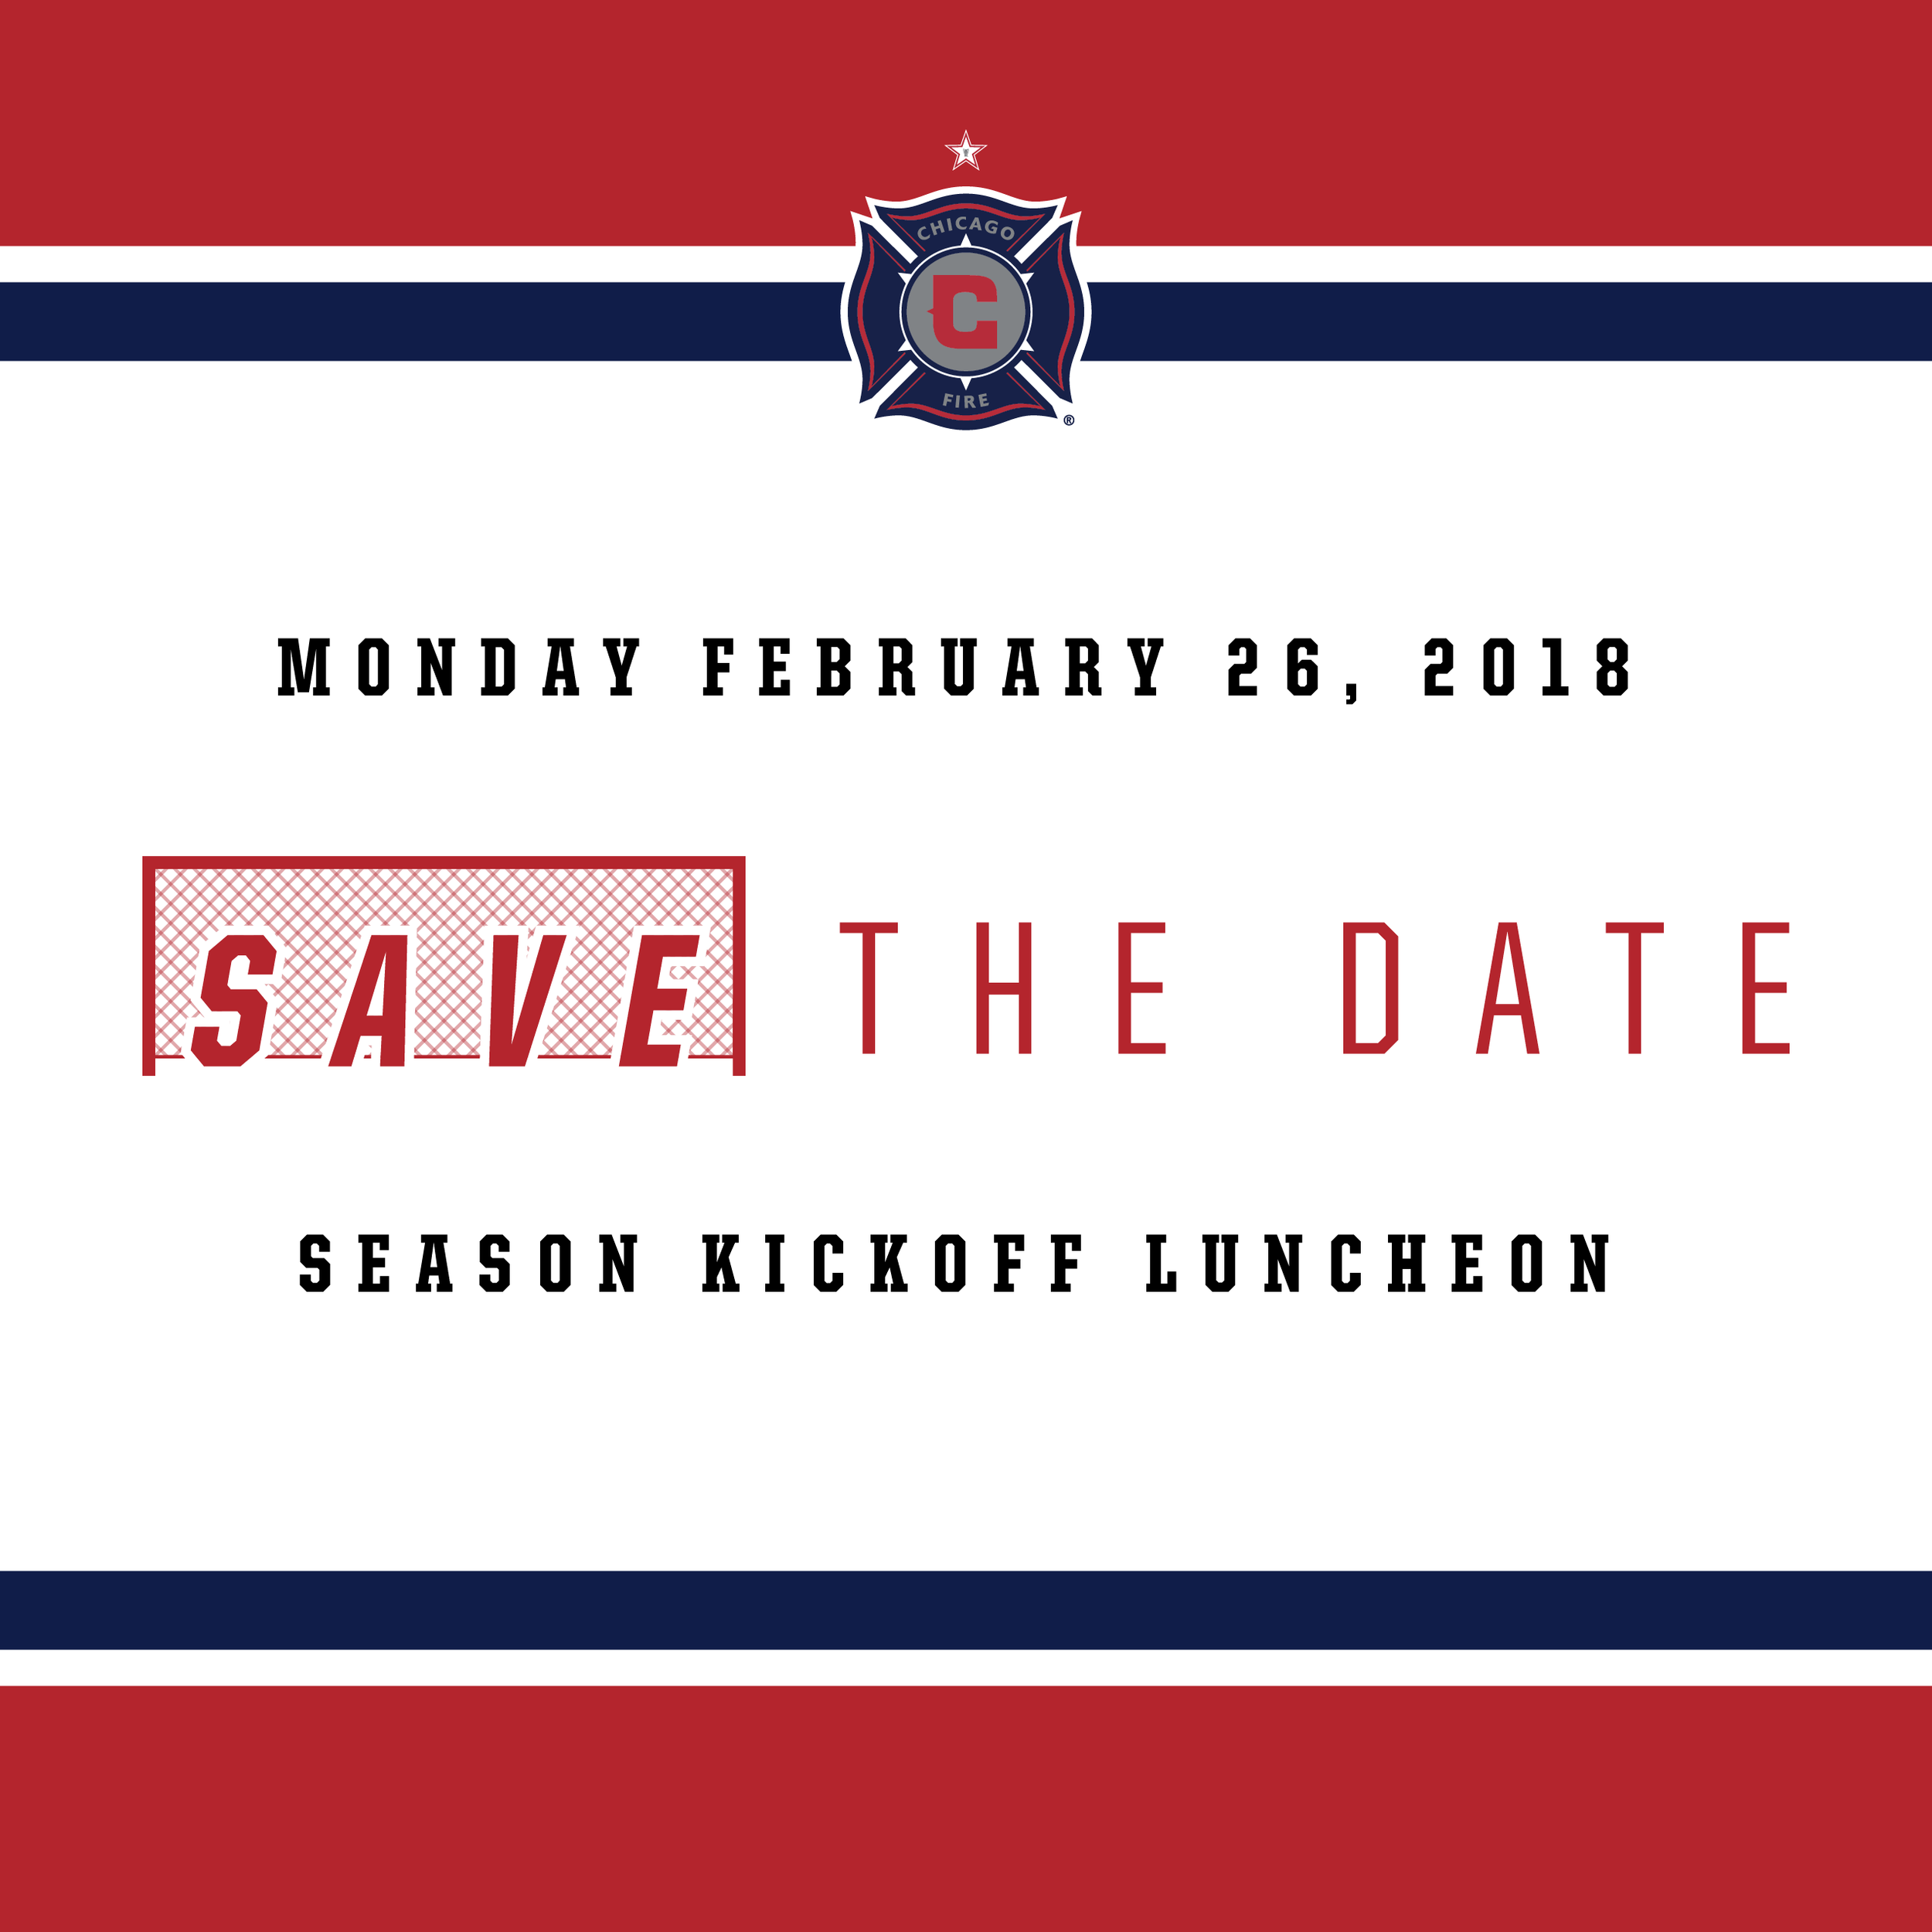 Save The Date text design for the club's annual Season Kickoff Luncheon promotion.